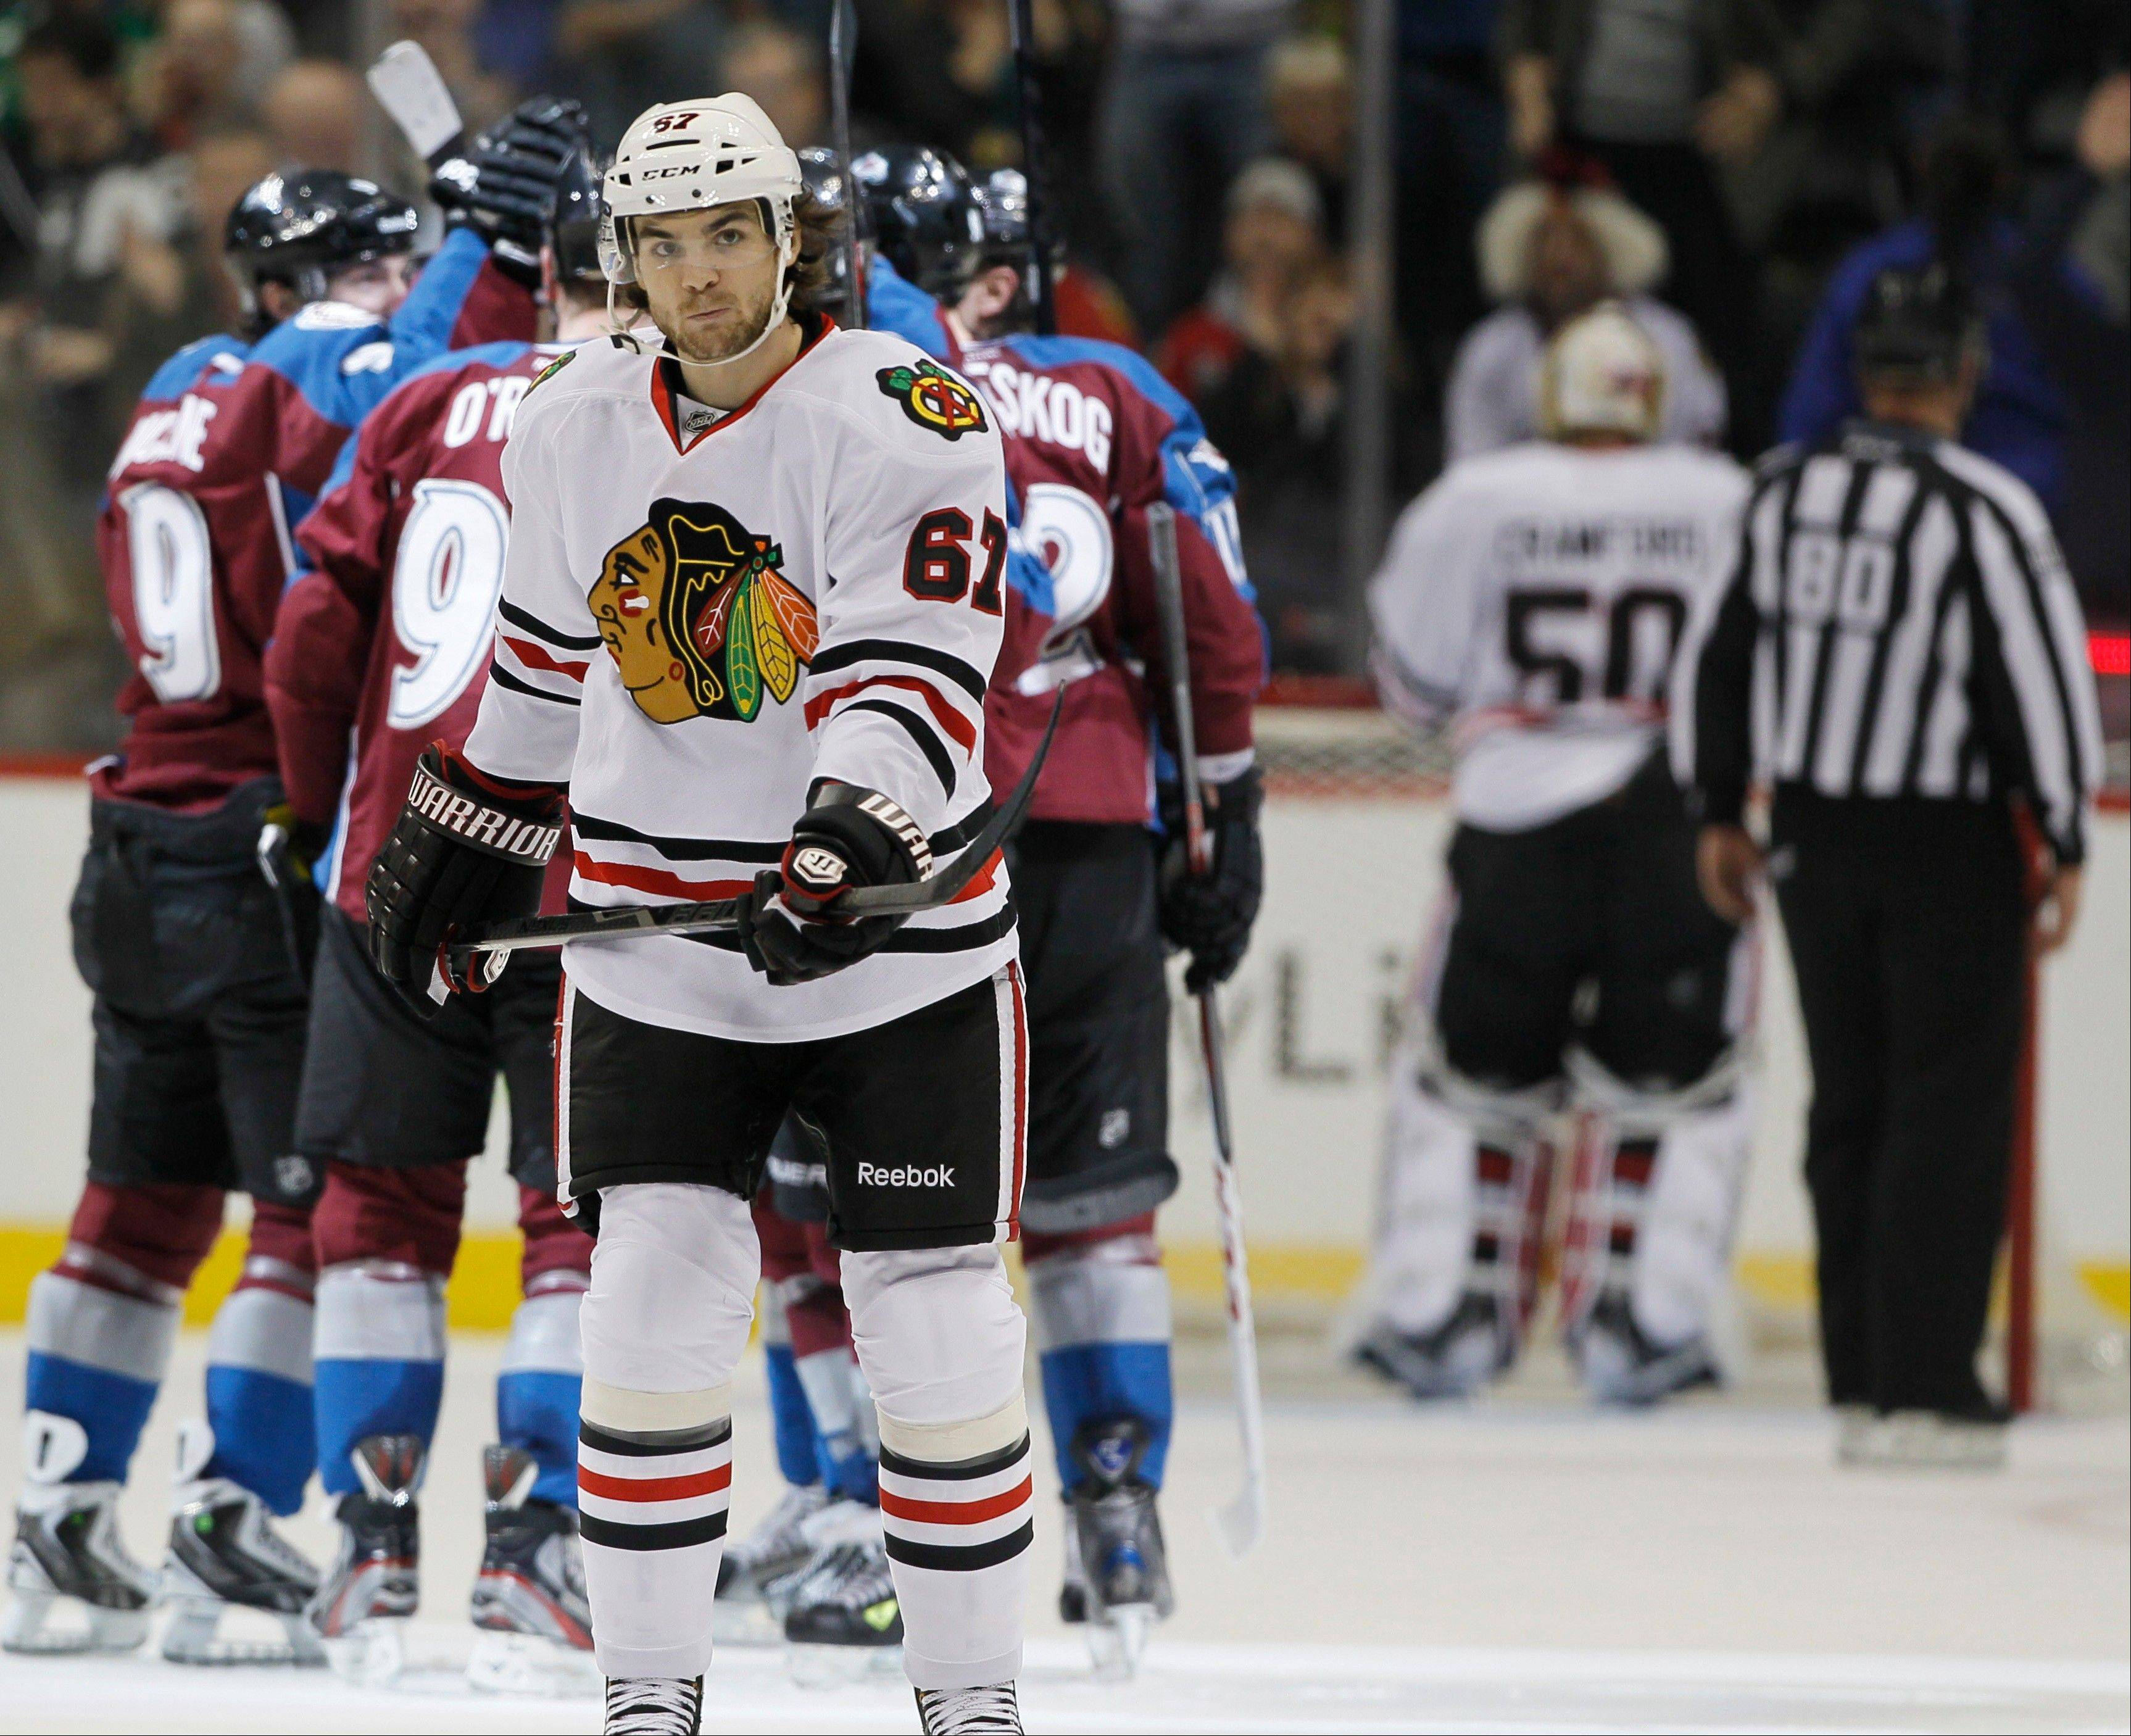 As members of the Colorado Avalanche, back, celebrate a goal by Ryan O'Reilly, Chicago Blackhawks right wing Michael Frolik (67), of the Czech Republic, skates back to the bench in the second period of an NHL hockey game in Denver, Friday, March 8, 2013.